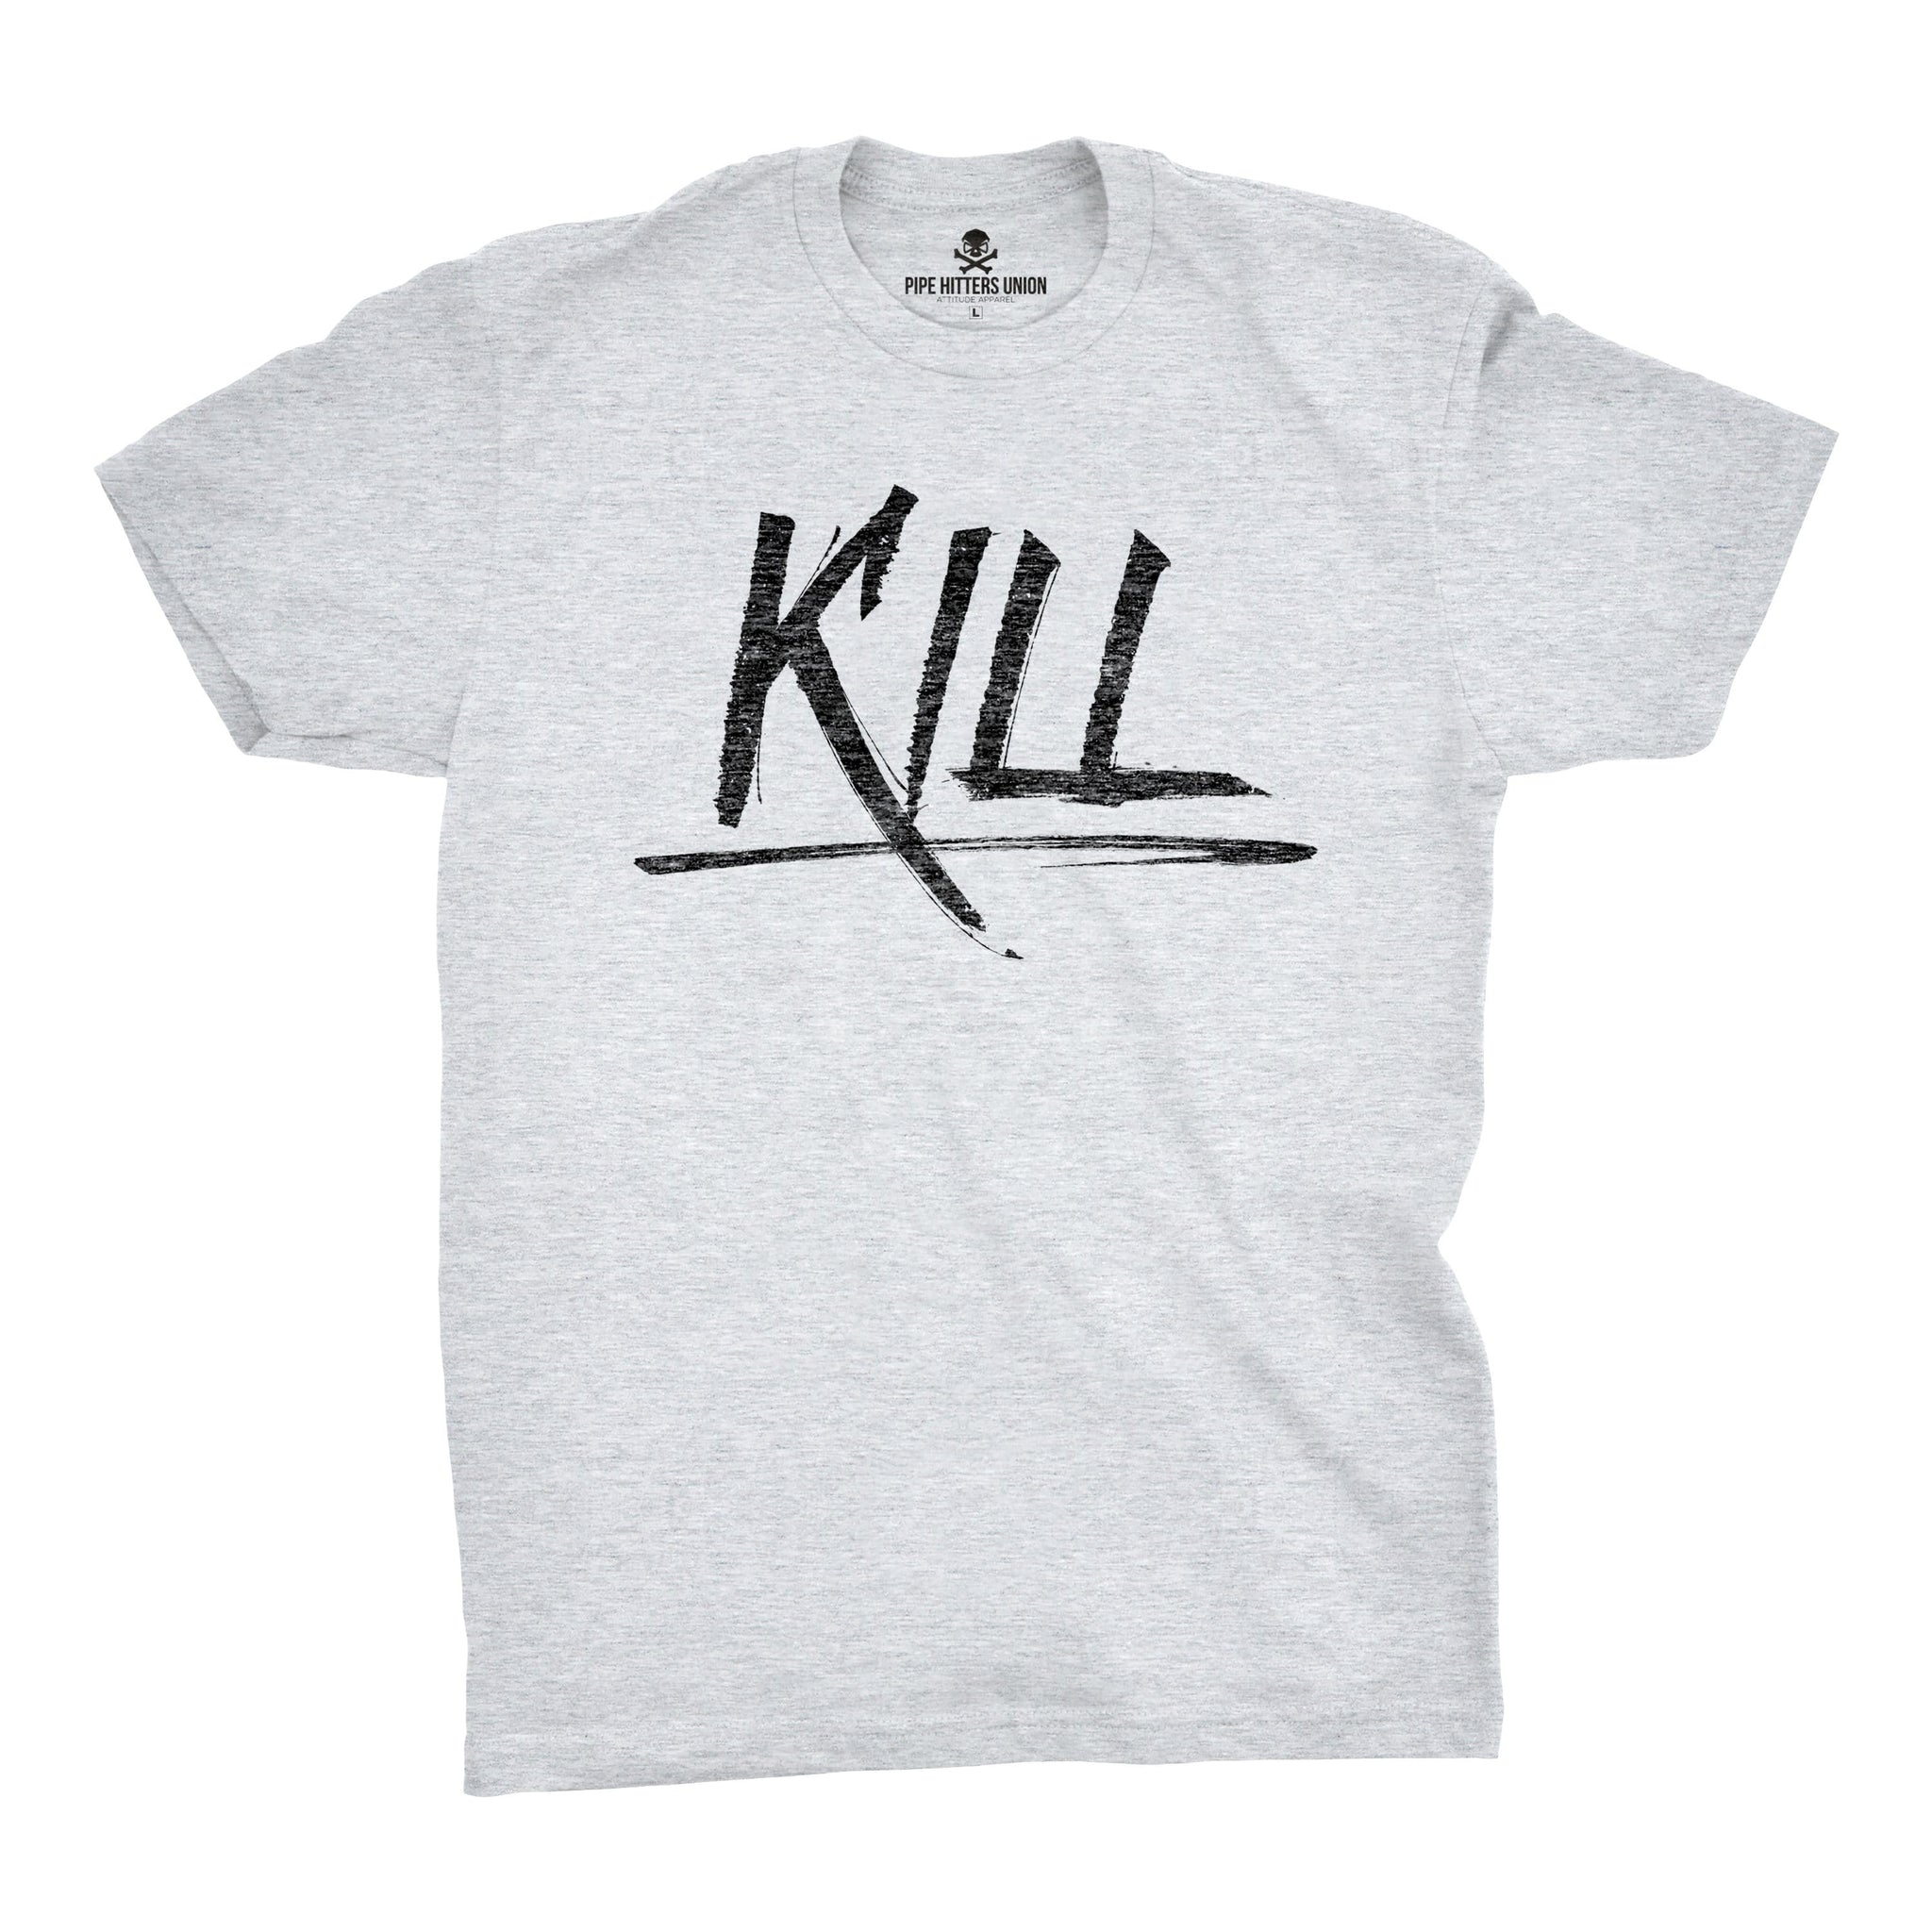 Kill - Grey - T-Shirts - Pipe Hitters Union